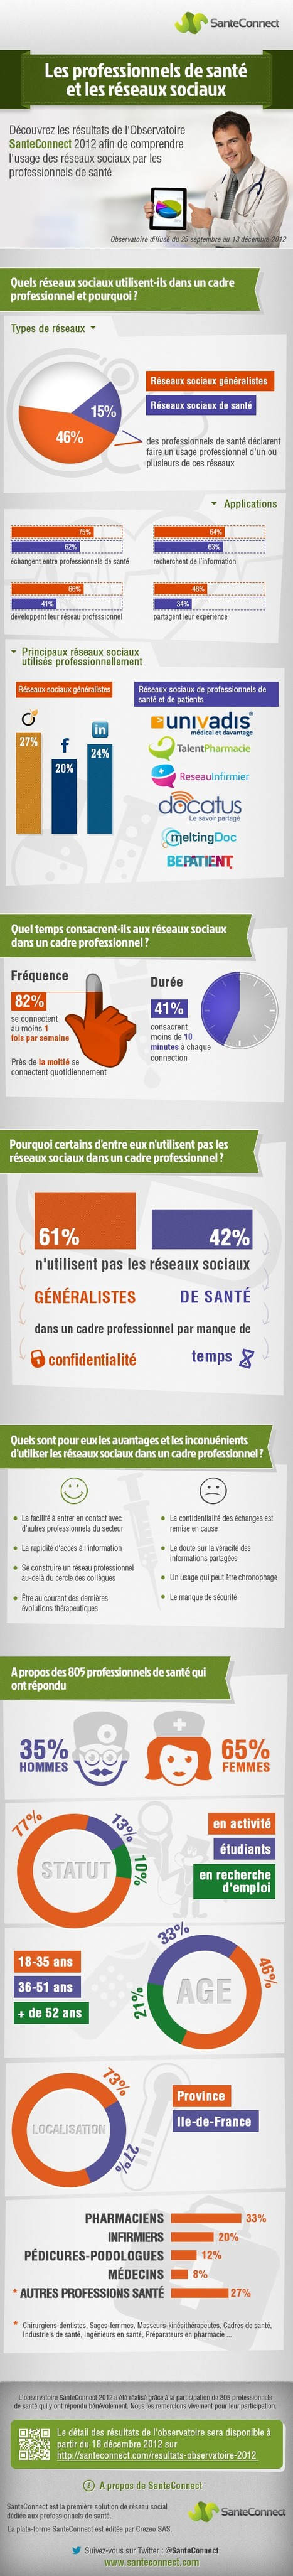 Infographie : usage des réseaux sociaux par les professionnels de santé | 9- PHARMA MULTI-CHANNEL MARKETING  by PHARMAGEEK | Scoop.it